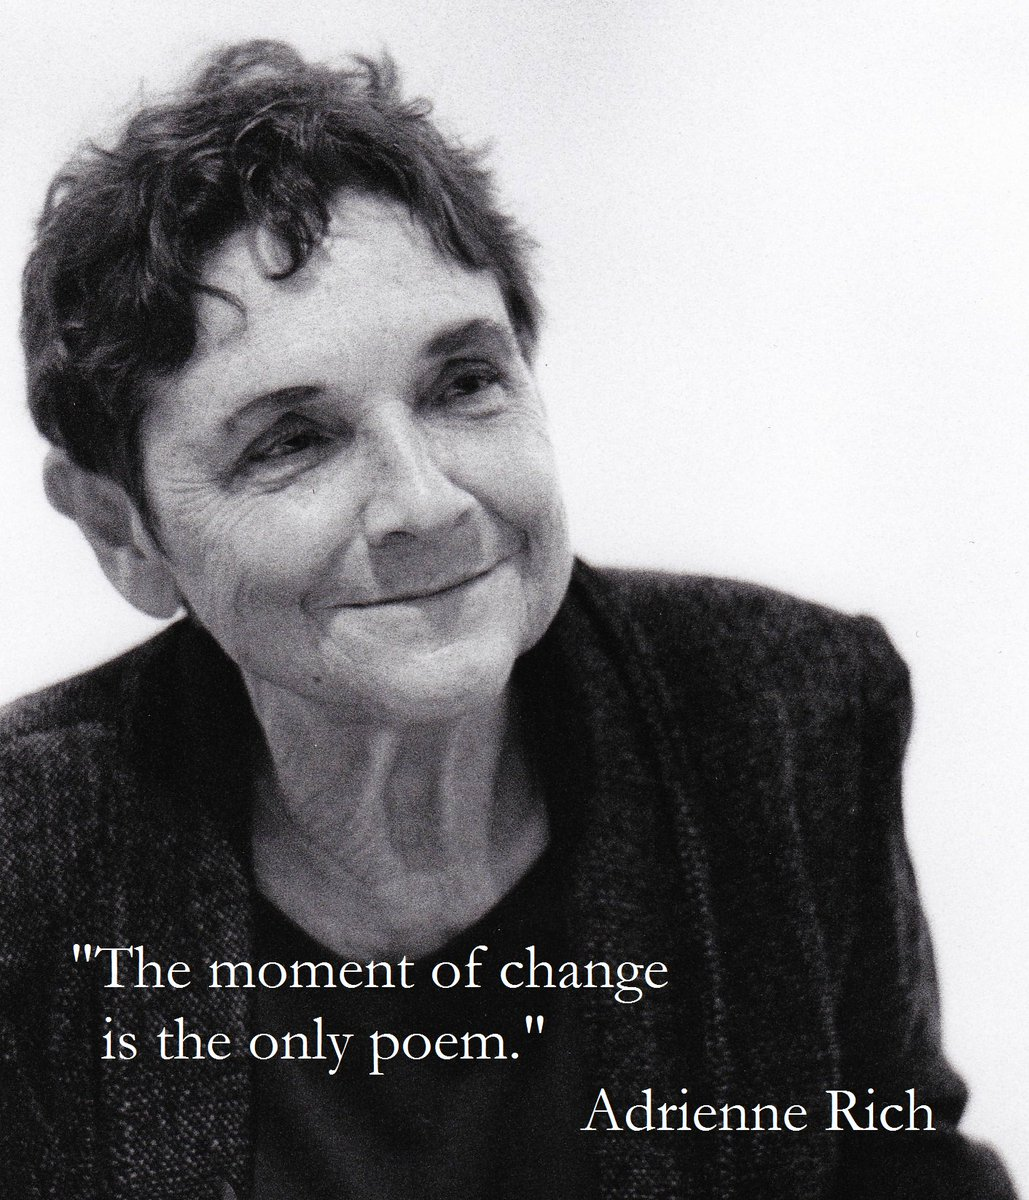 explication prospective immigrants please note adrienne rich Prospective immigrants please note by adrienne rich either you will go through this door or you will not go through if you go through there is always the risk.